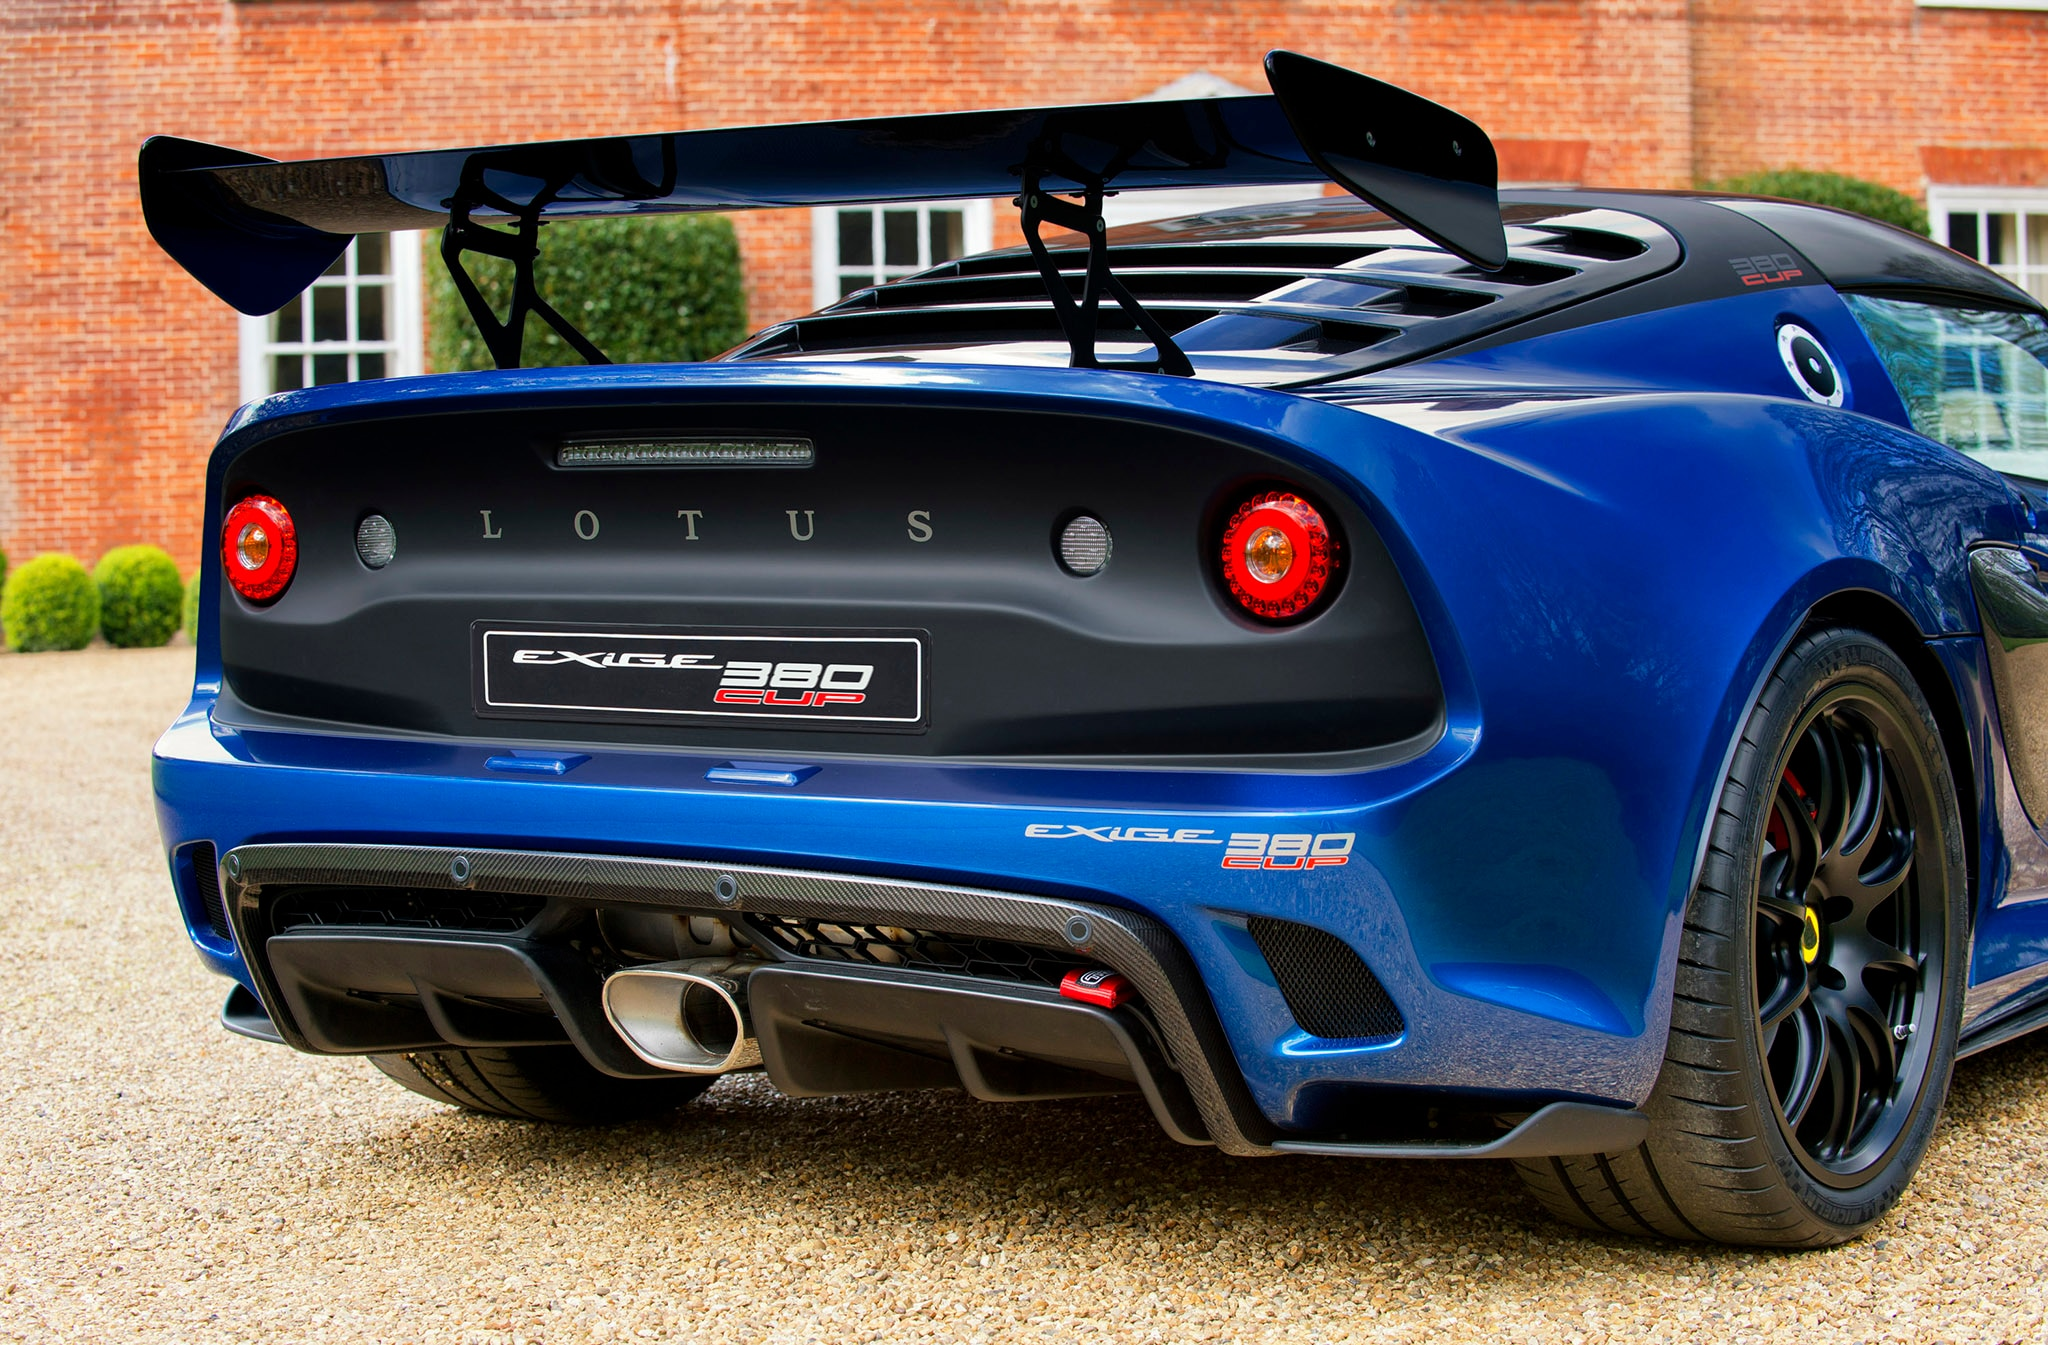 lotus exige cup 380 arrives with race ready looks and specs automobile magazine. Black Bedroom Furniture Sets. Home Design Ideas